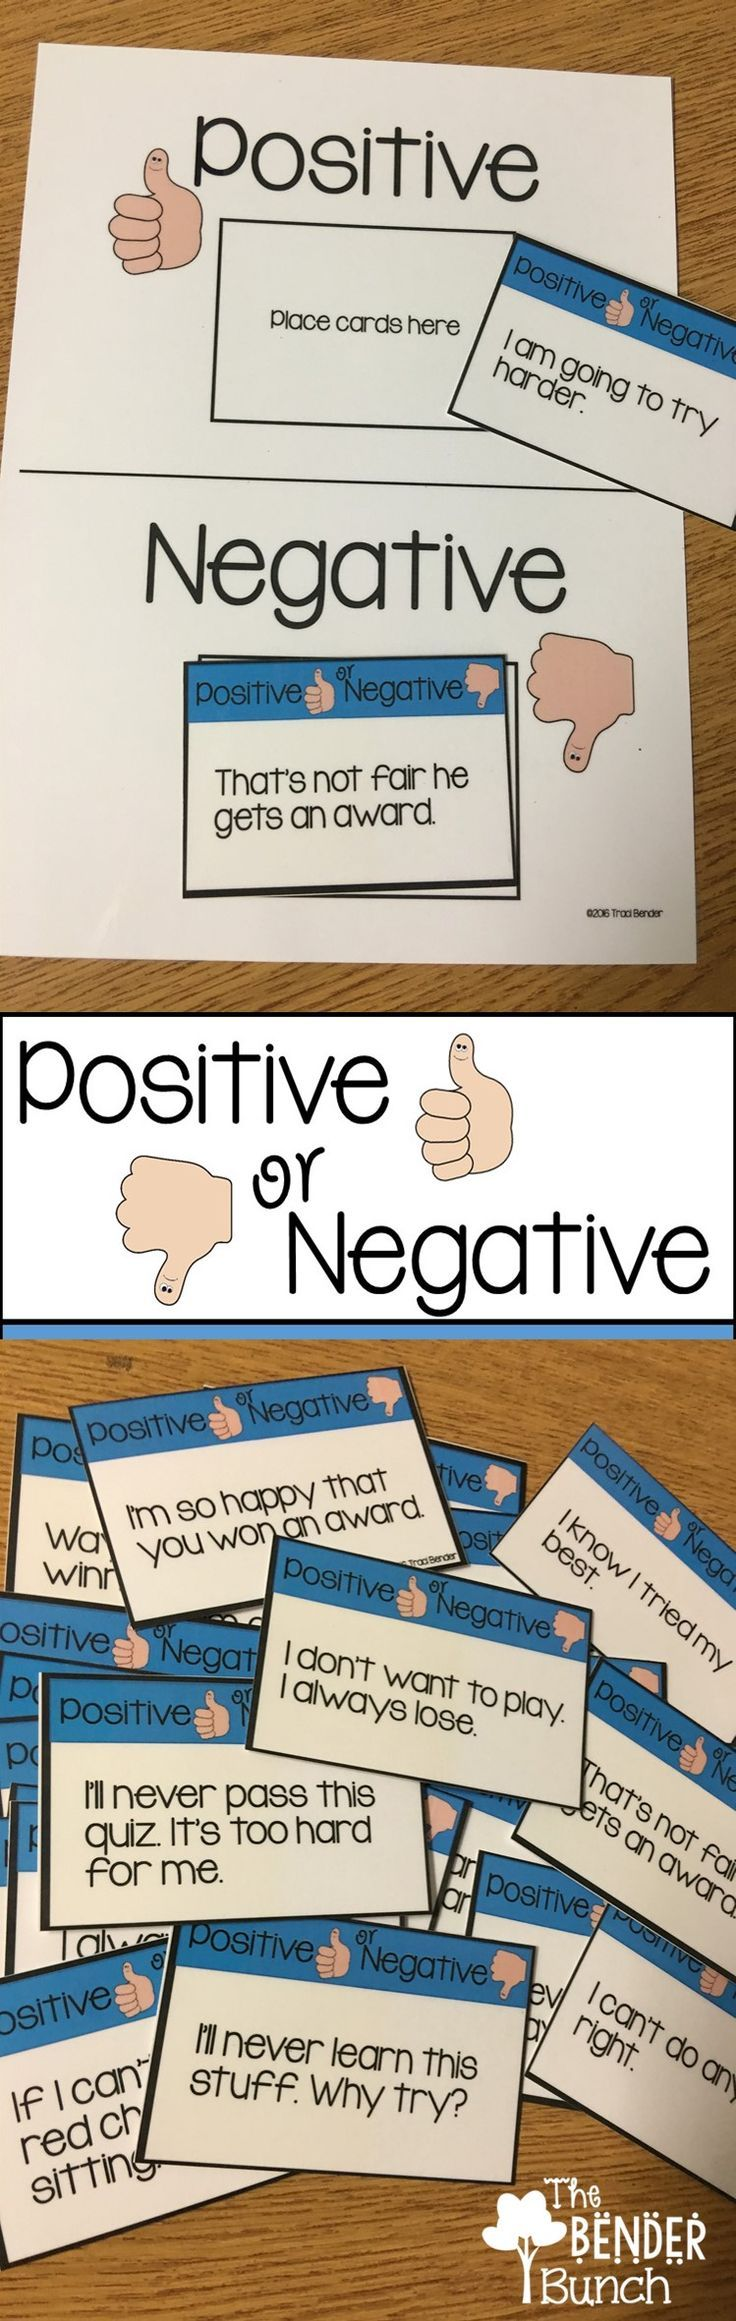 17 best ideas about positive behavior on pinterest classroom rewards free classroom rewards. Black Bedroom Furniture Sets. Home Design Ideas